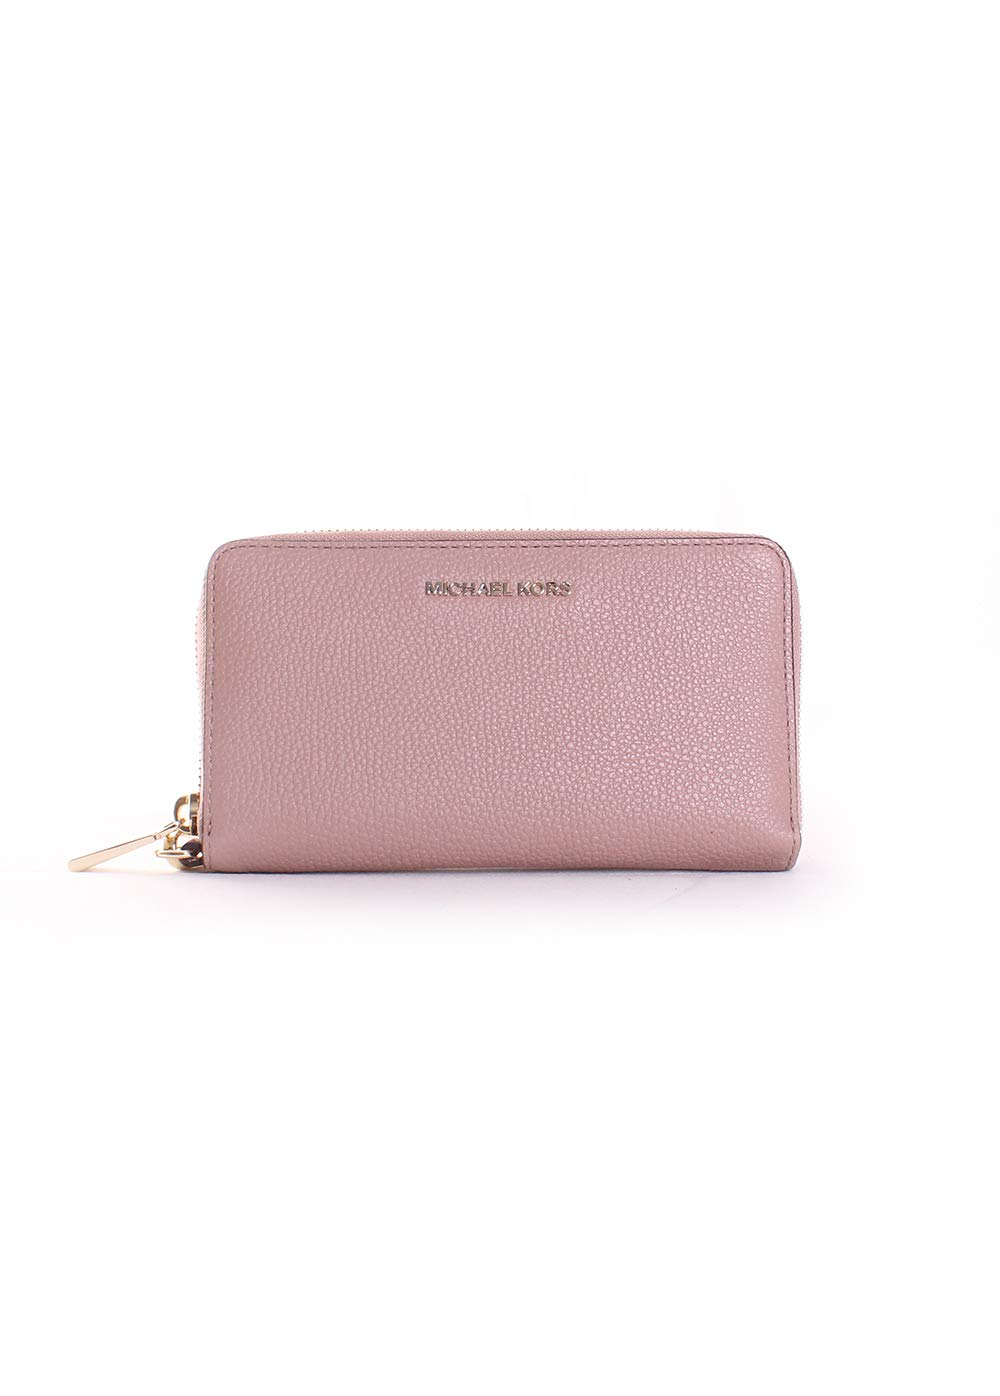 Michael Kors Pebbled Leather Smartphone Wristlet in Fawn